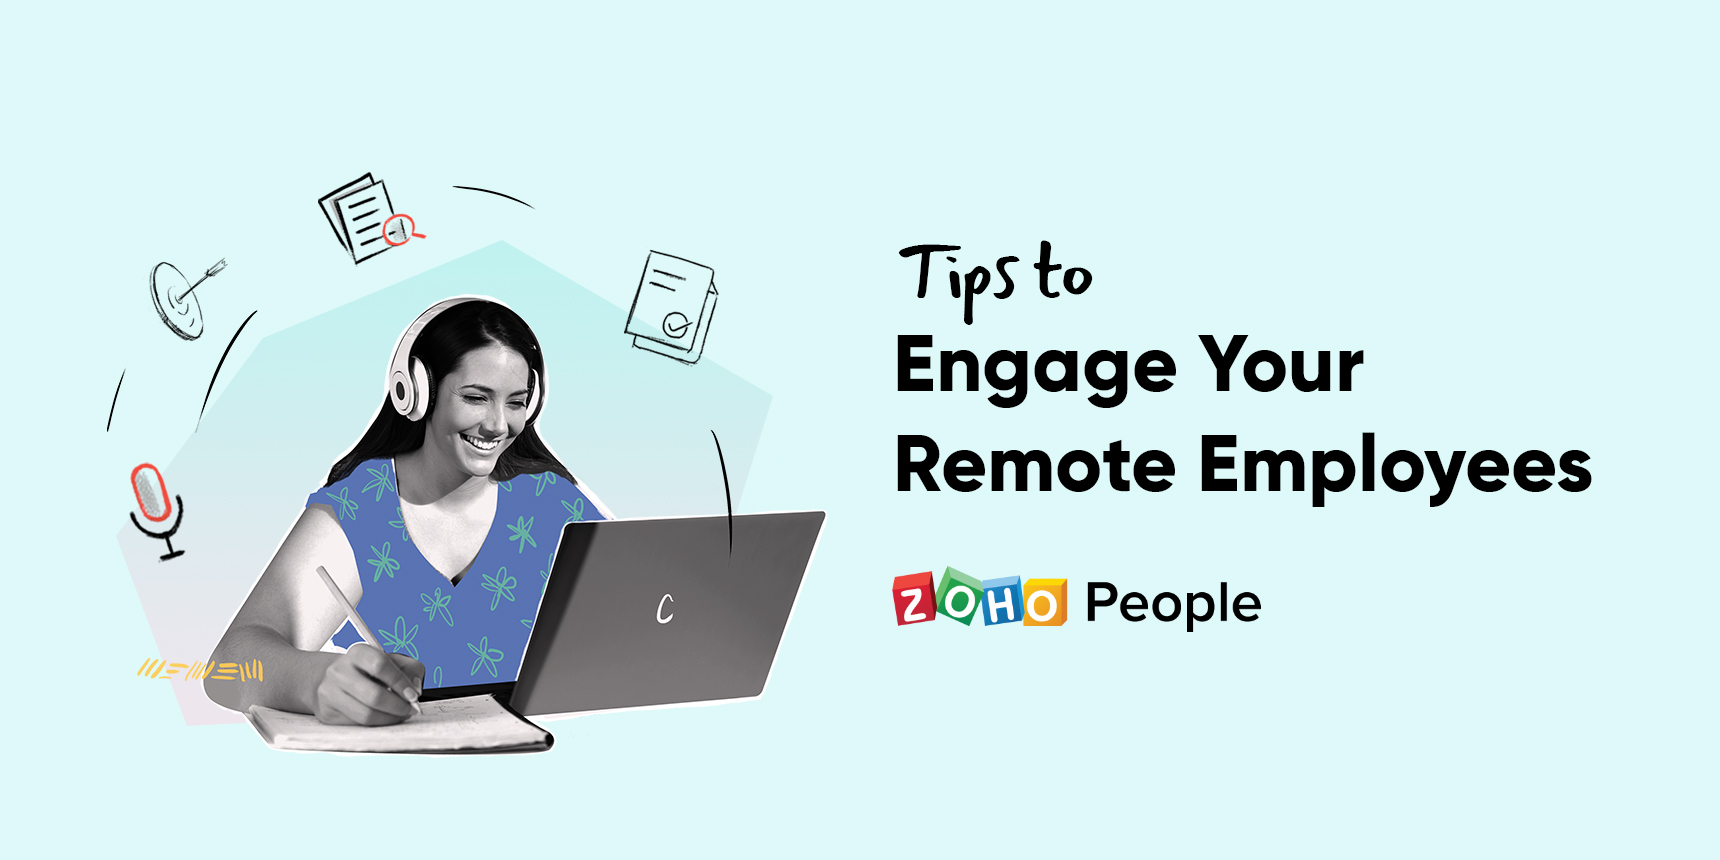 Engage your remote workforce with these 6 tips